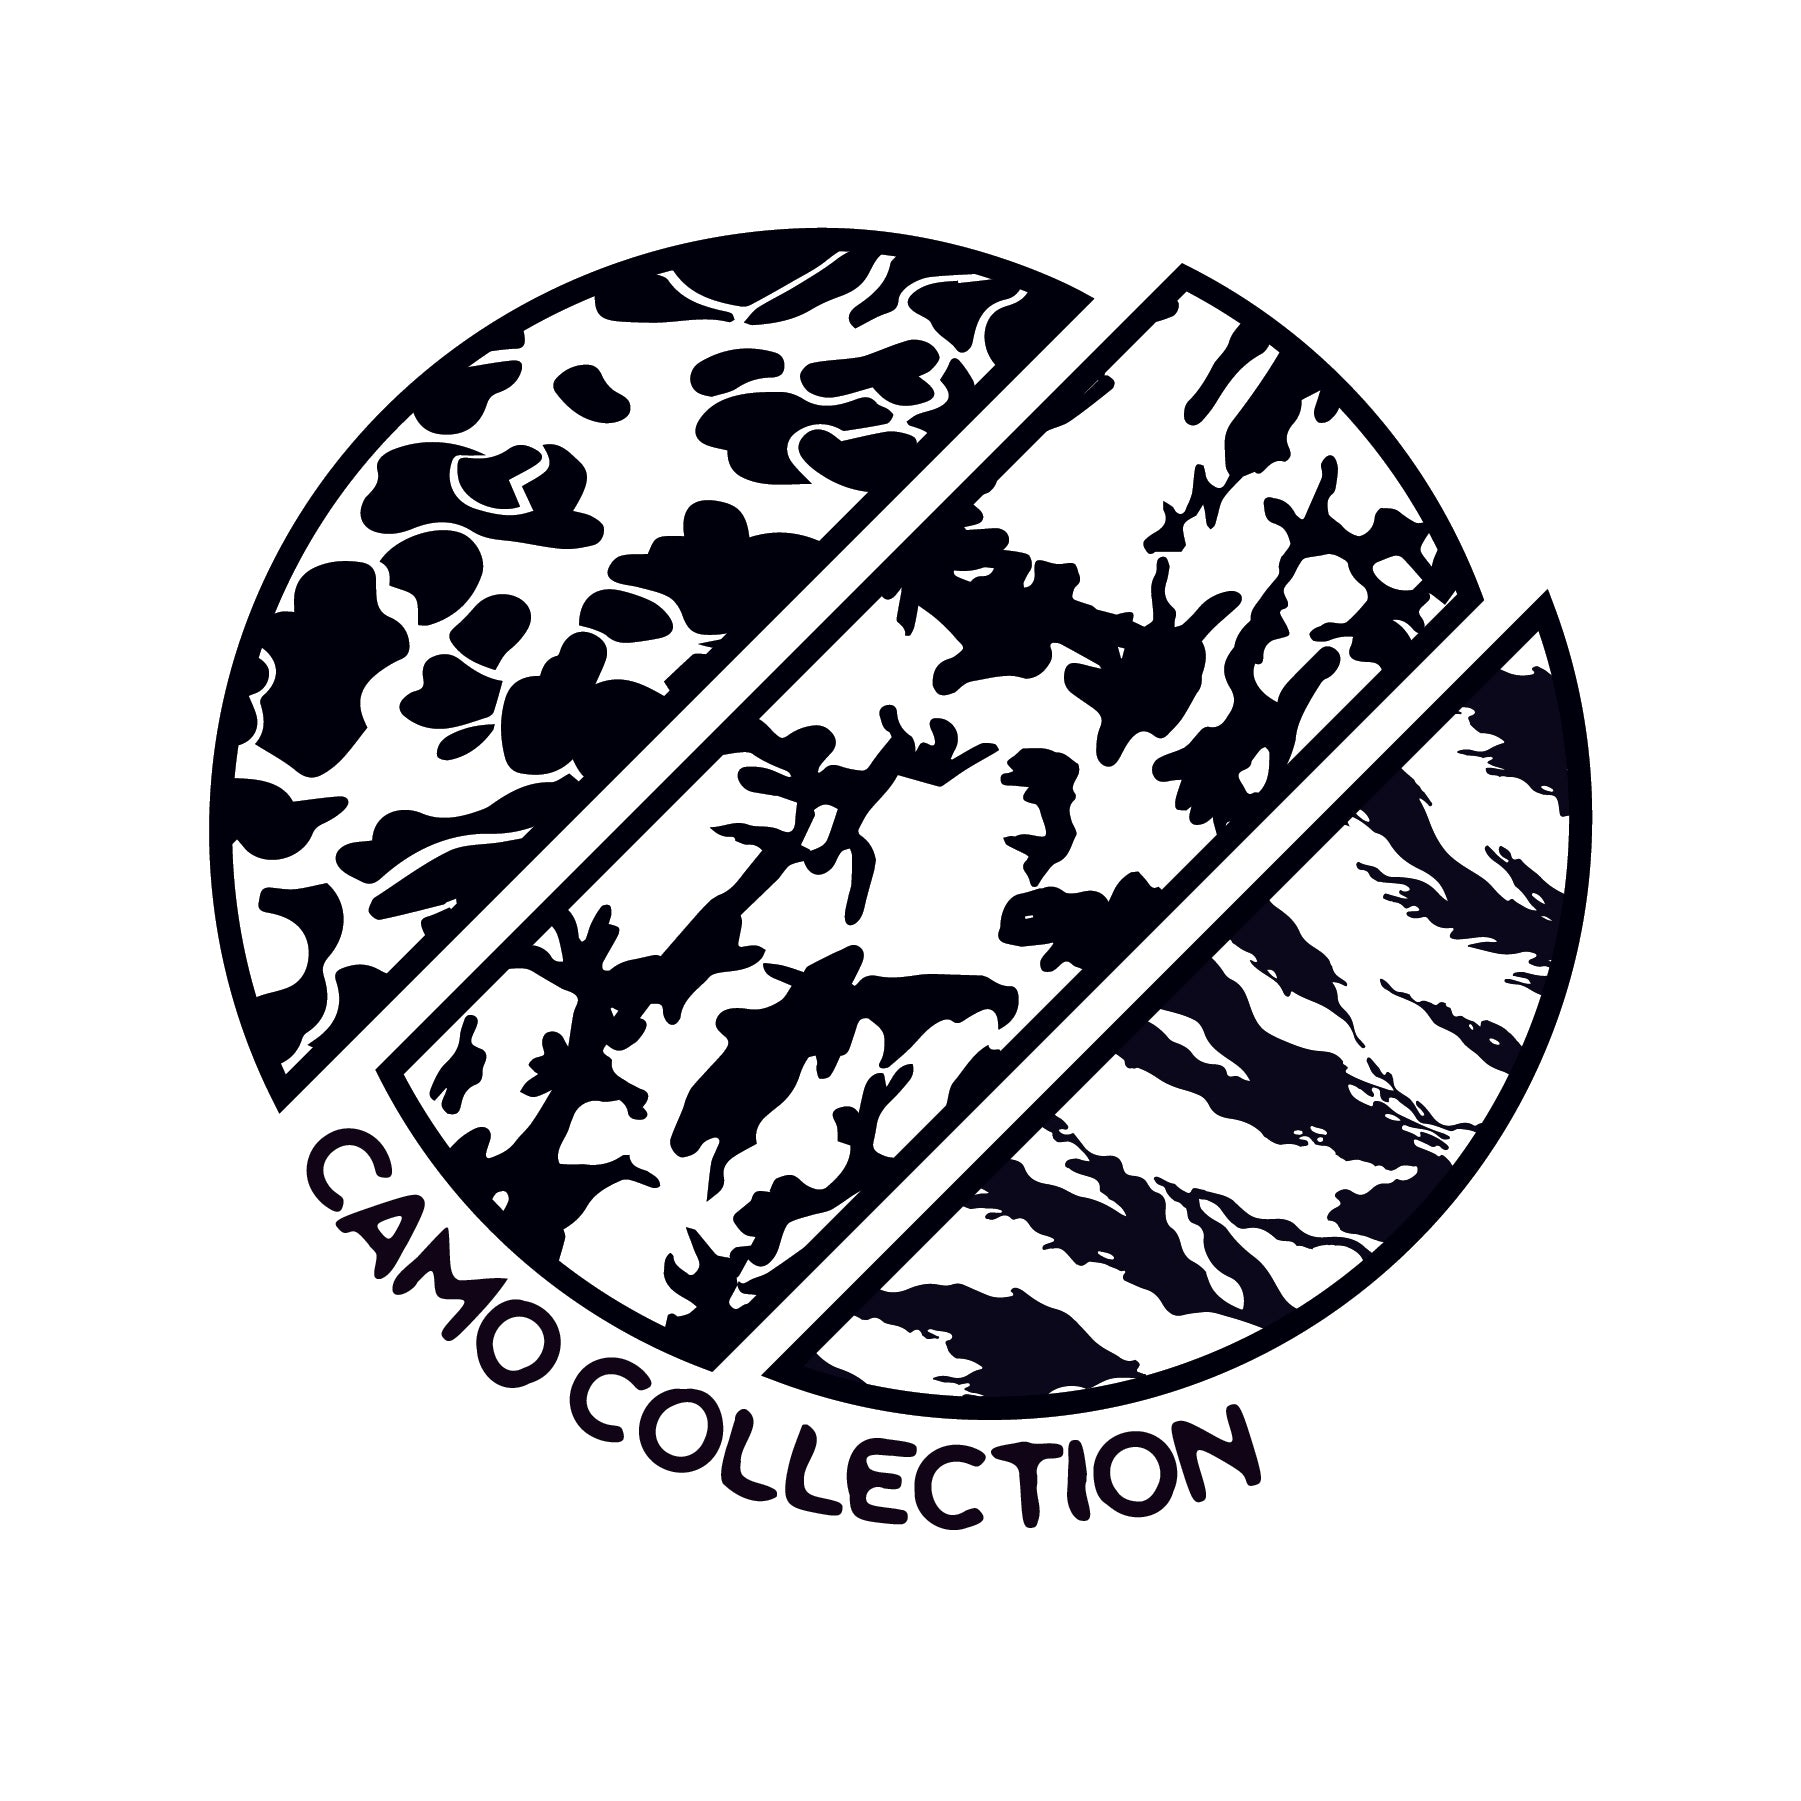 5. Camo Collection